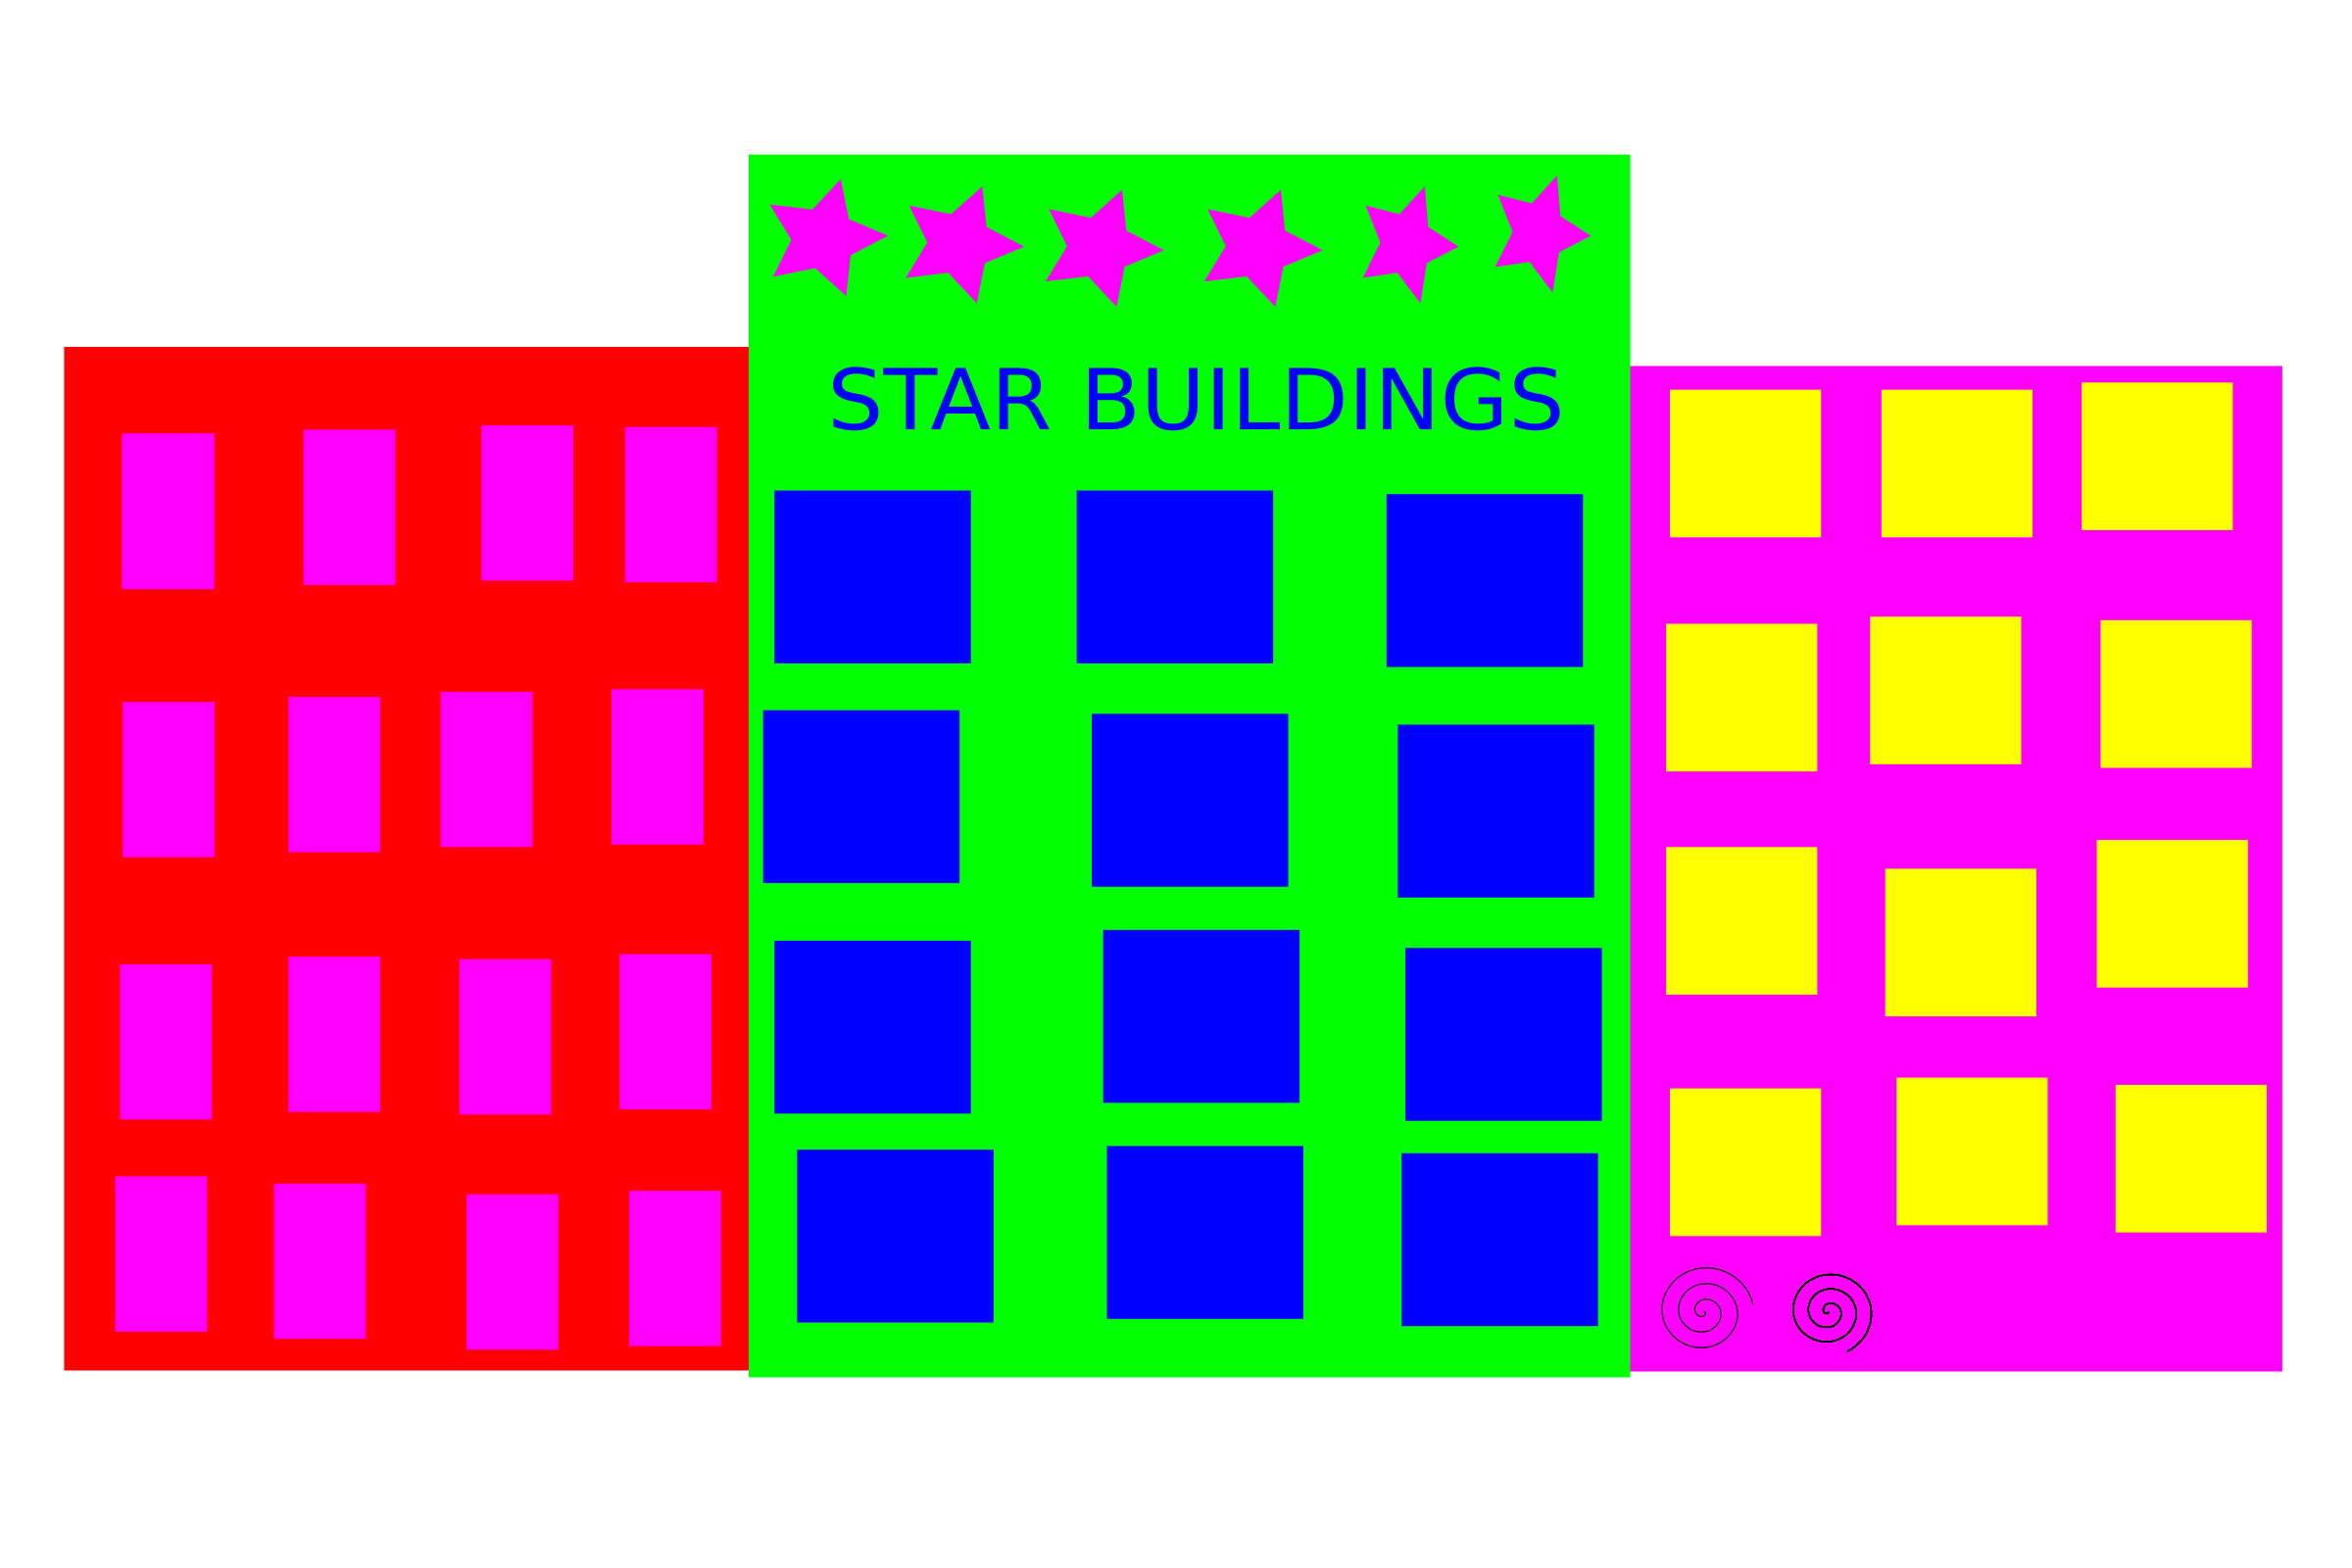 star buildings by zphsvaddeswaram1